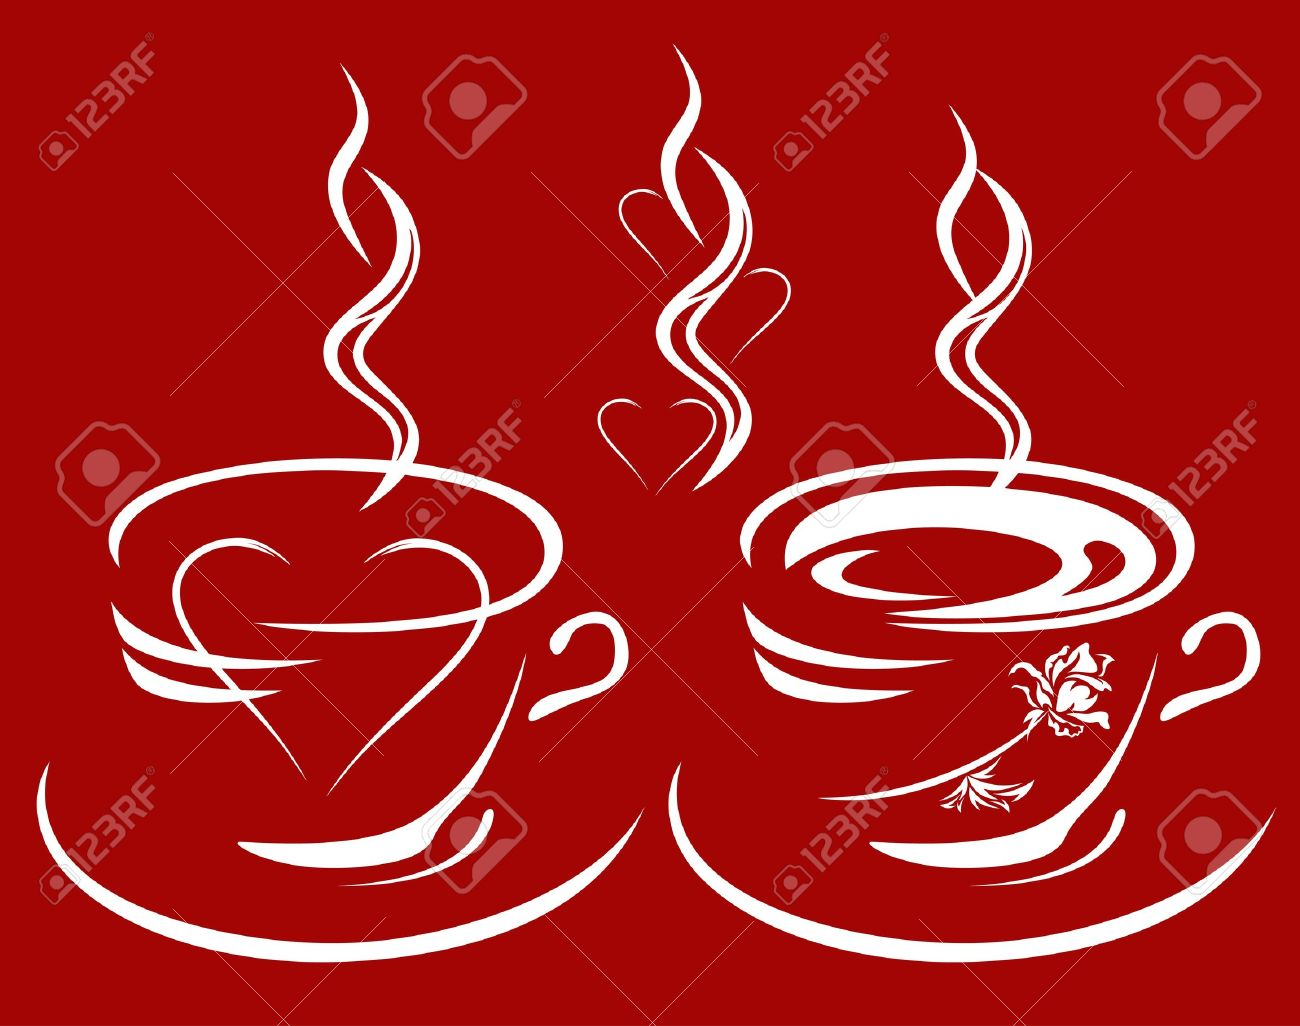 cup of coffee or tea with heart and rose inside - hot drinks decorative elements set Stock Vector - 11866134